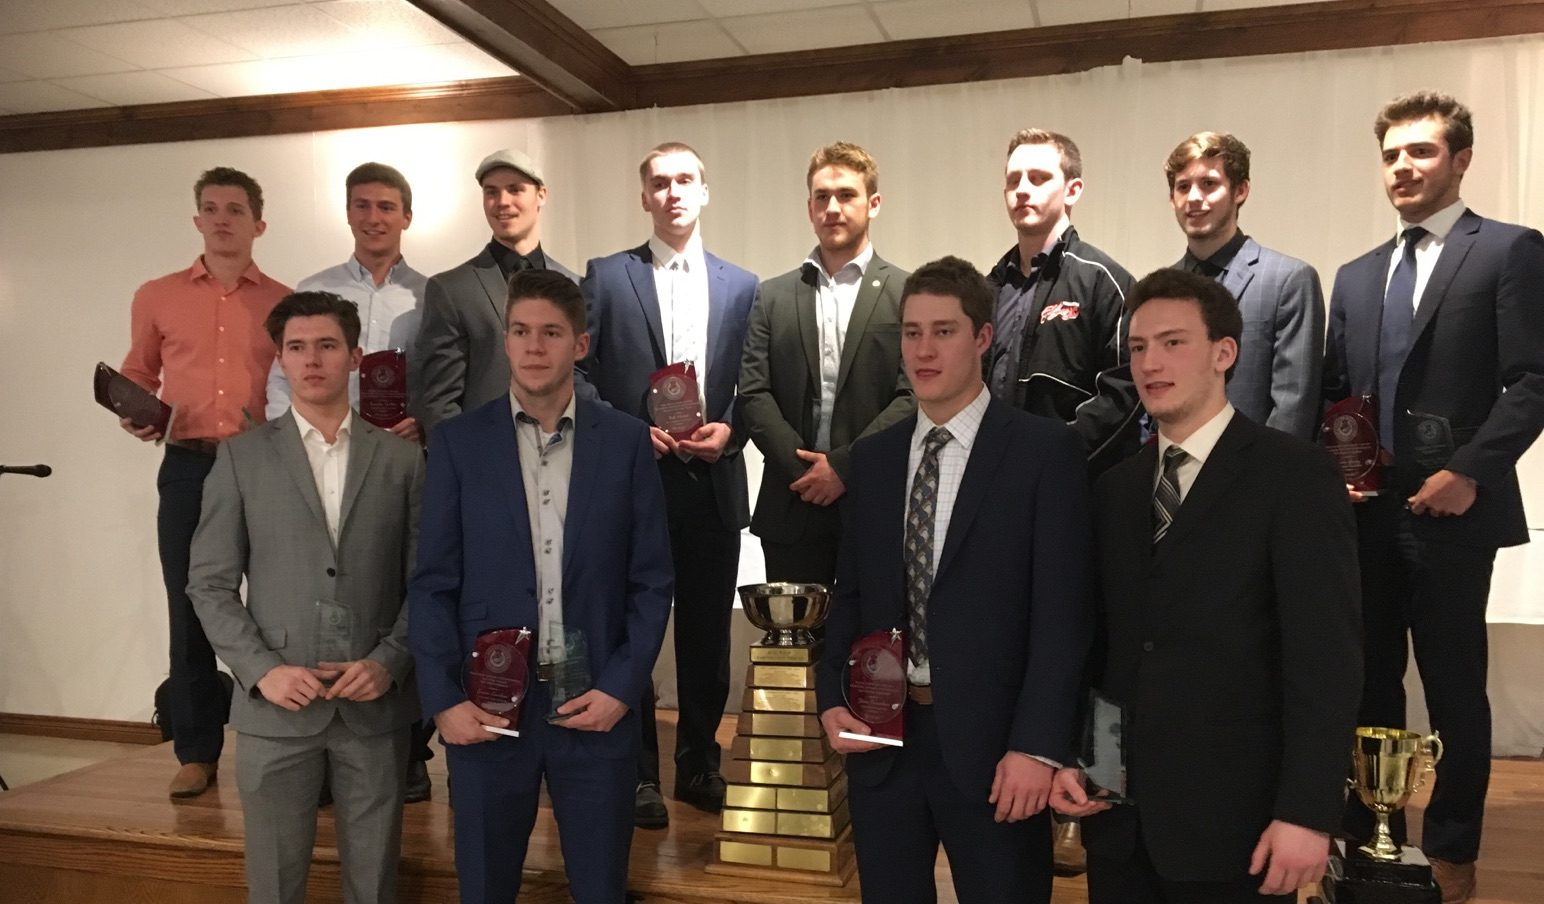 Local Winners At the GOJHL Awards Banquet